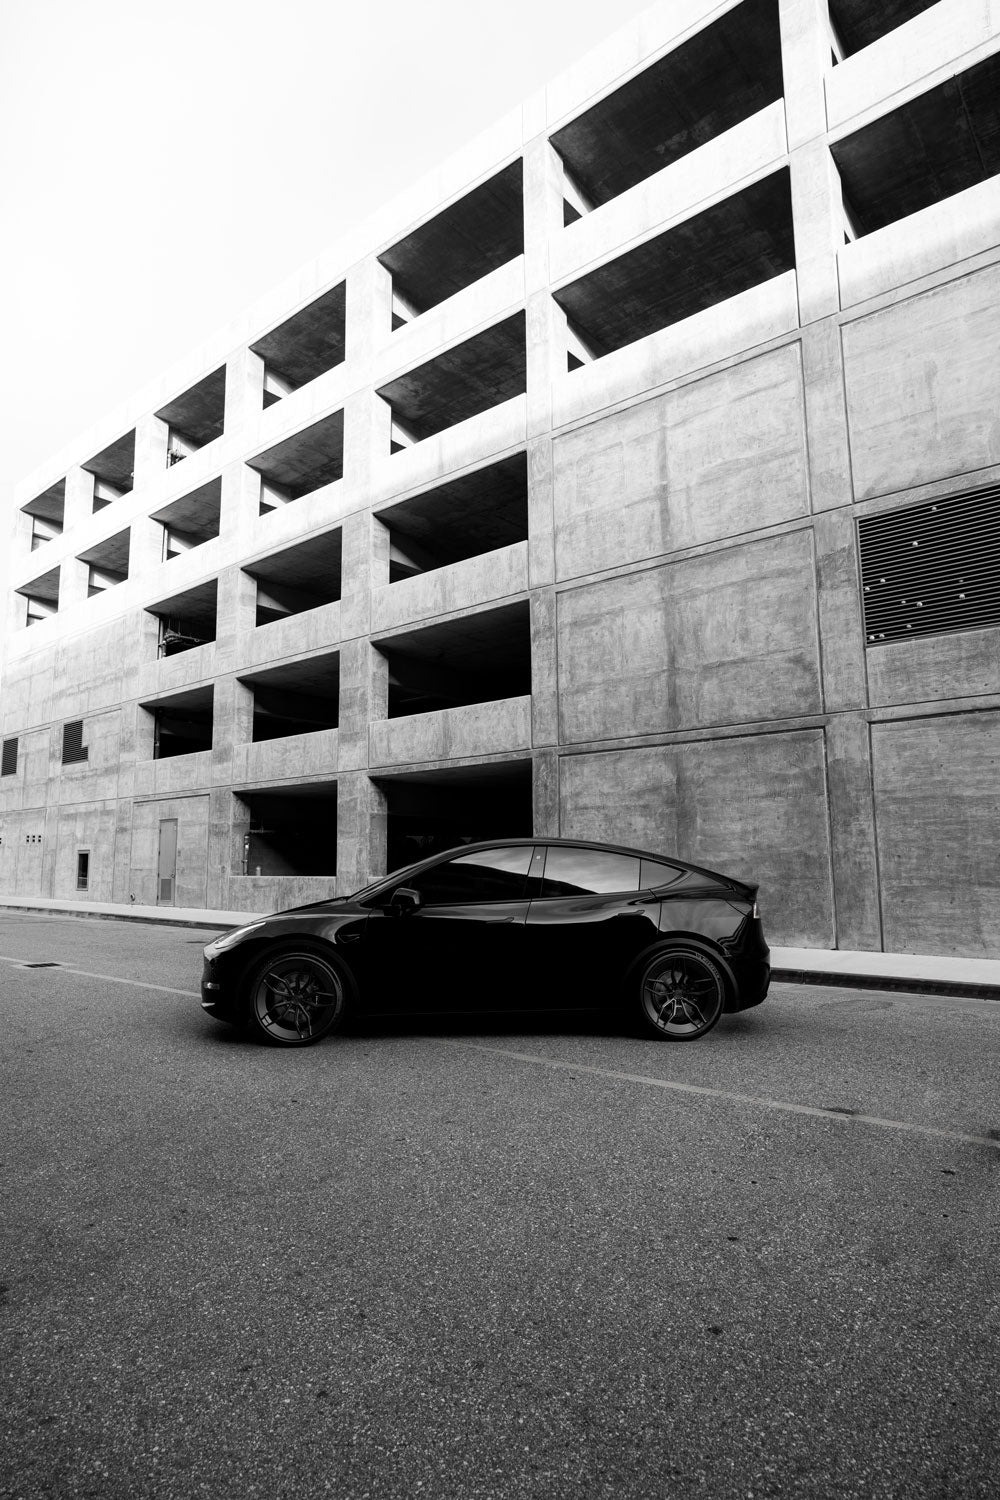 Tesla Model Y photoshoot in Playa Vista with paid2shoot and Roveri Eyewear new CLM7 carbon-titanium designer sunglasses, made in Italy.